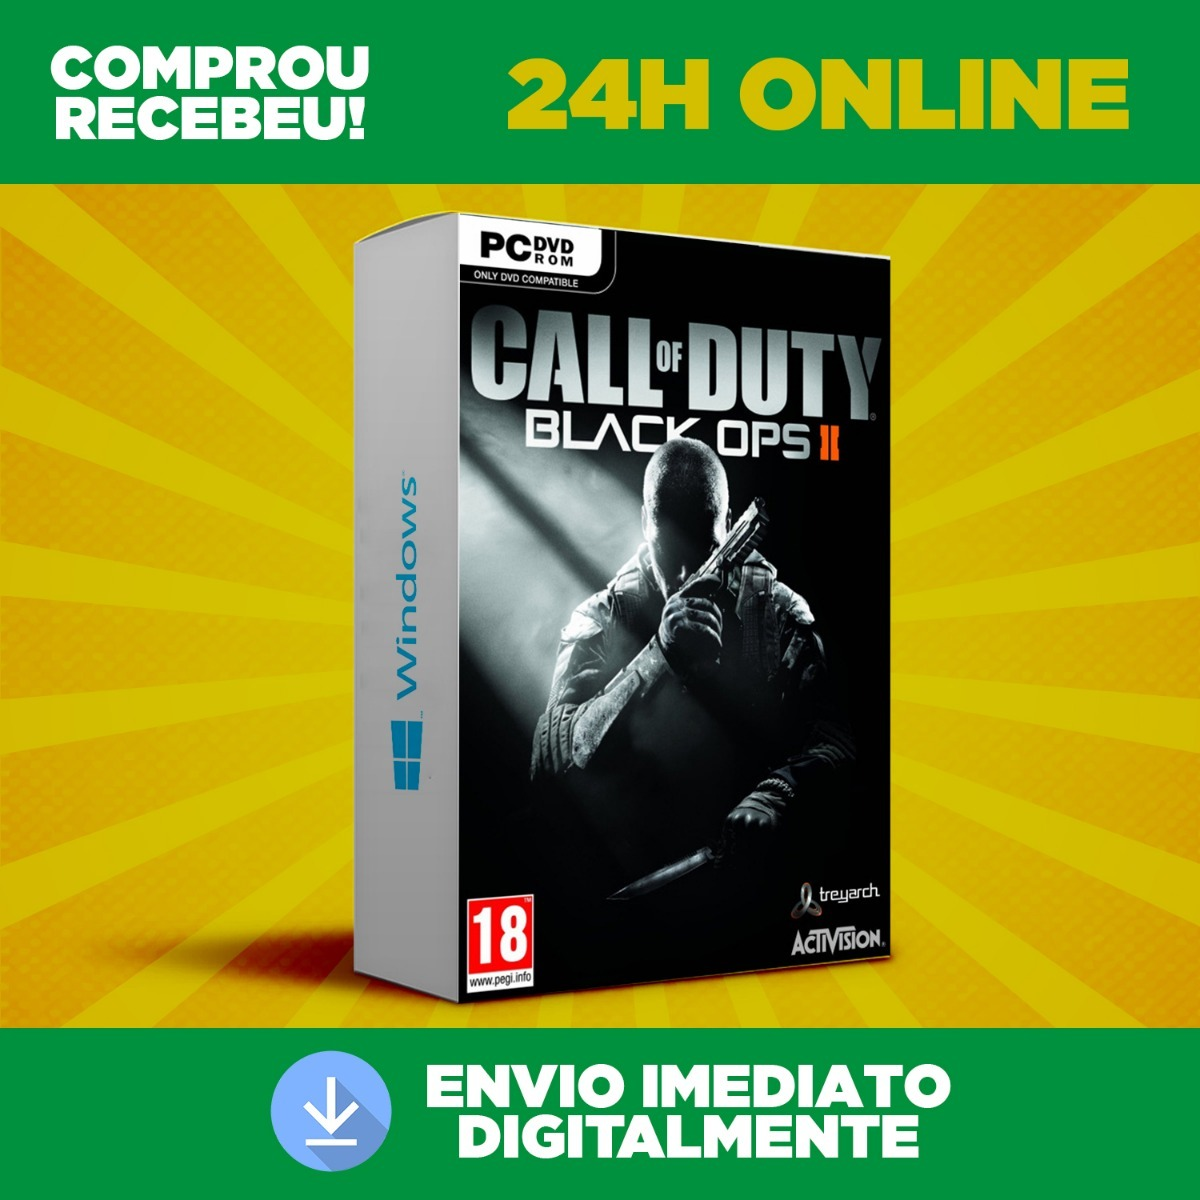 Call Of Duty Black Ops 2 - Pc + Dublagem Envio 0s